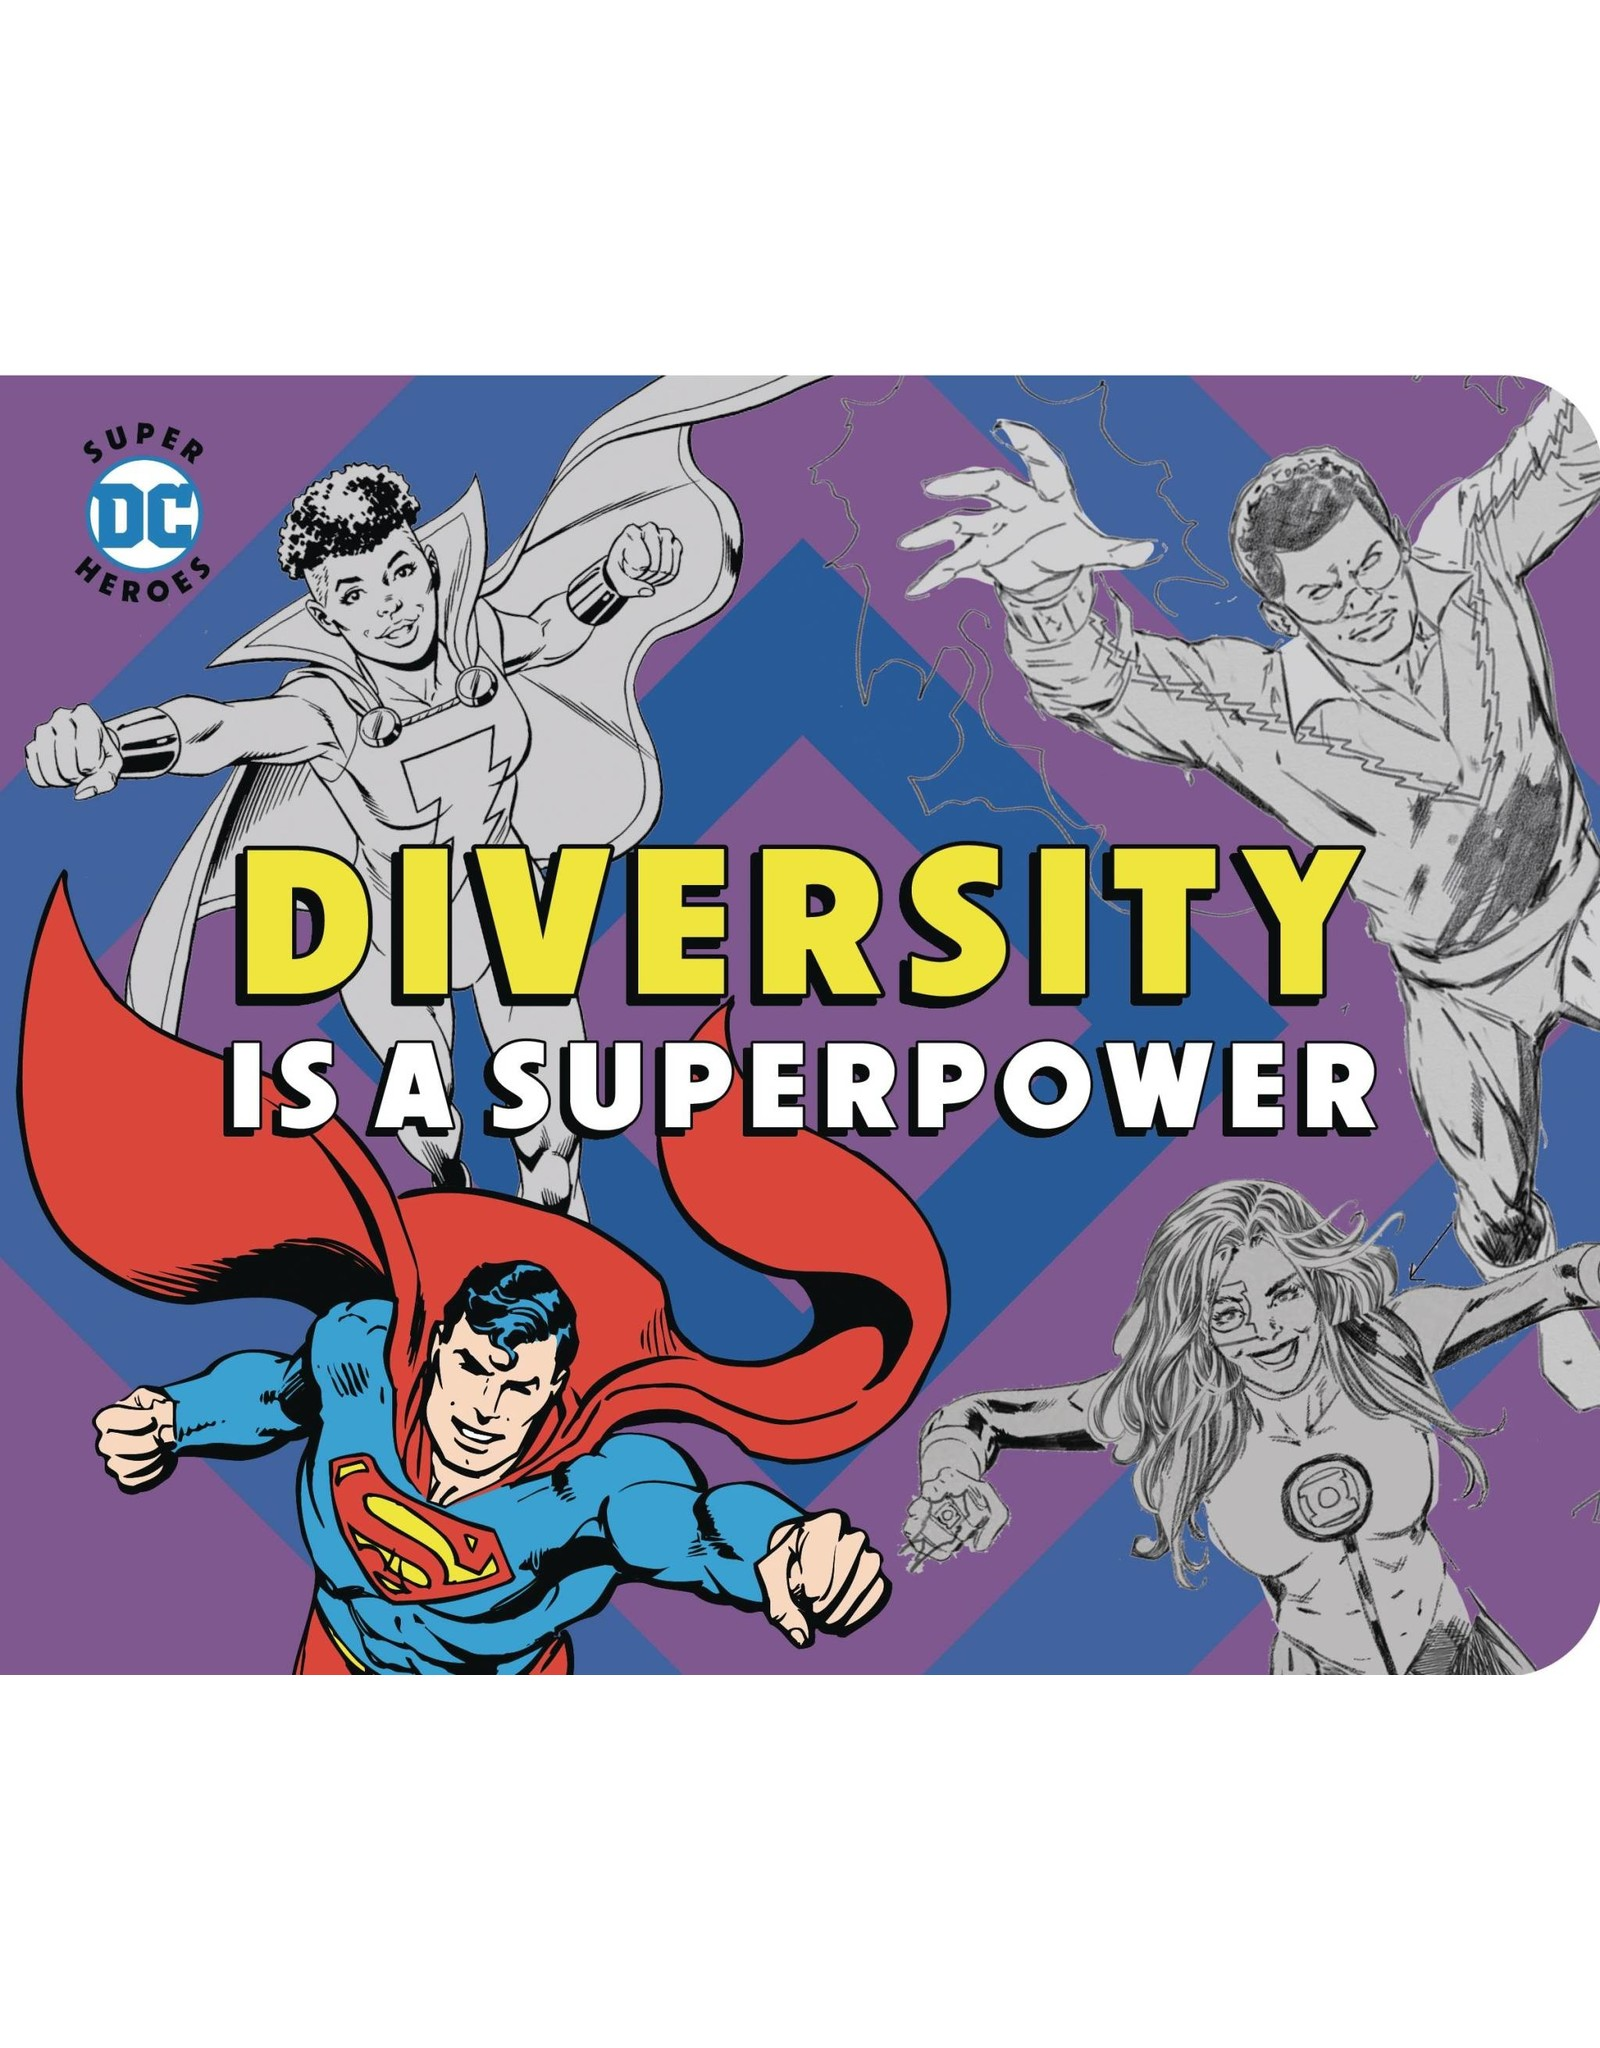 DOWNTOWN BOOKWORKS DC SUPER HEROES DIVERSITY IS SUPERPOWER BOARD BOOK